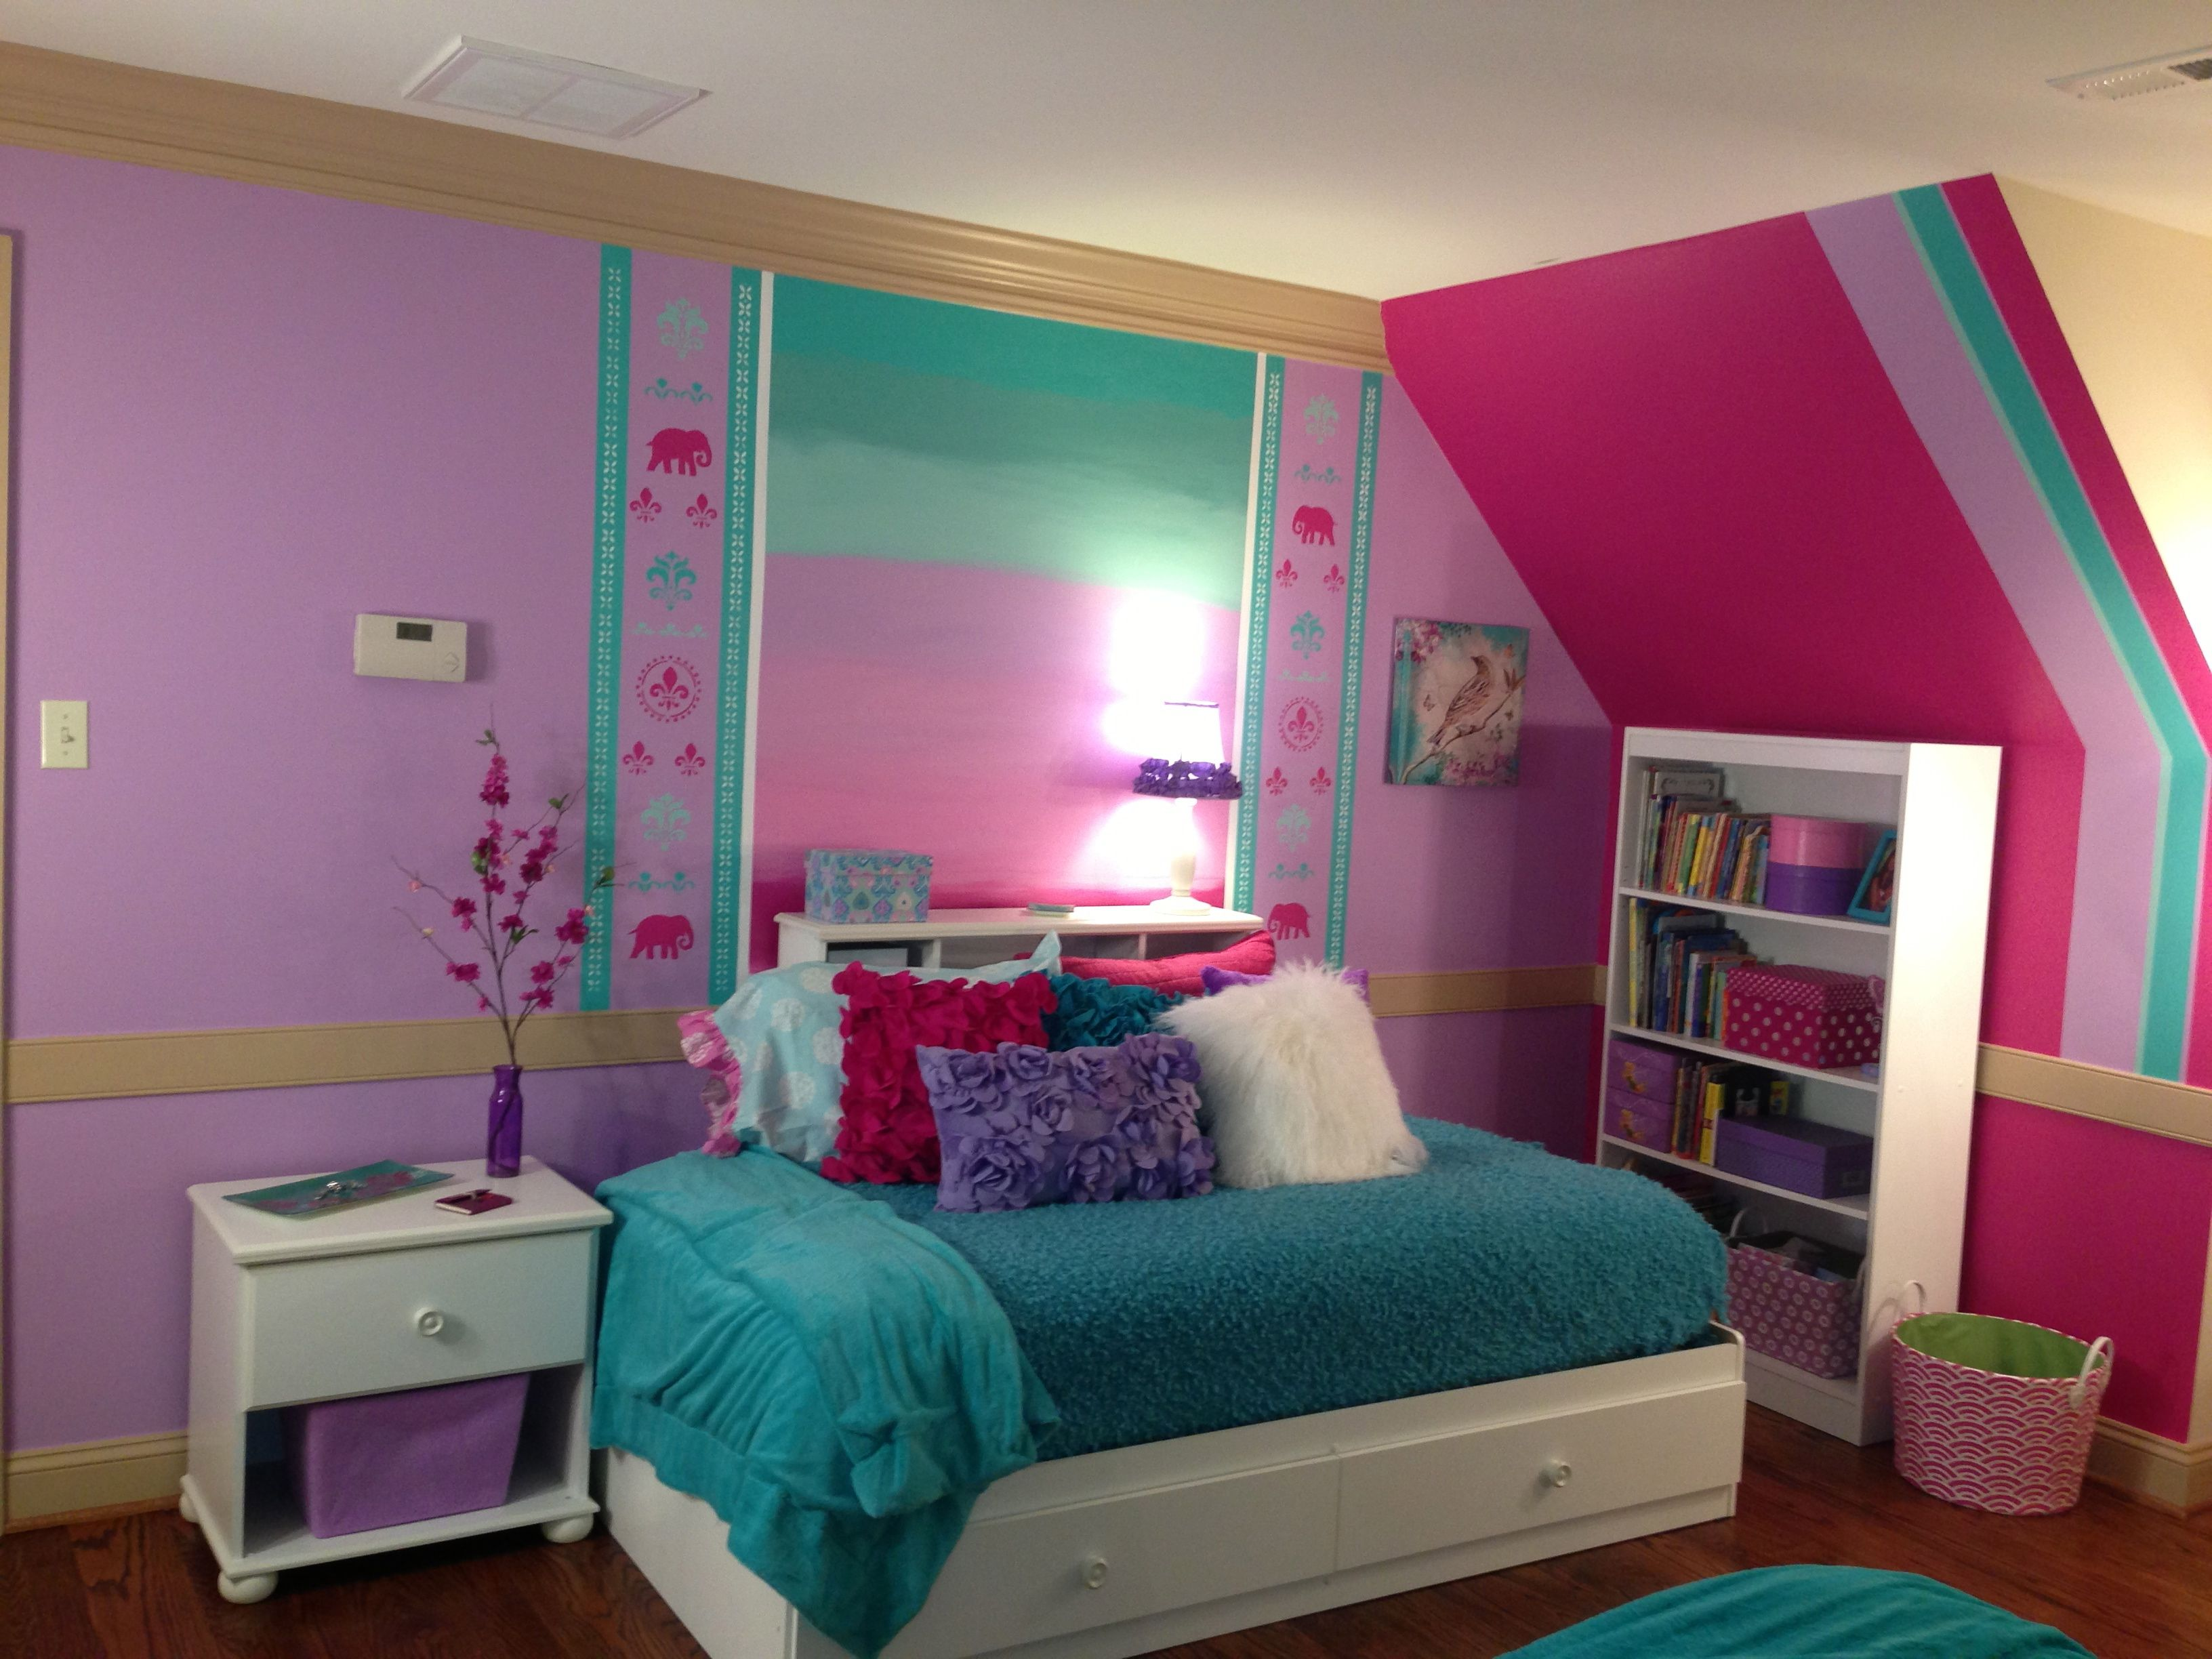 Making the most of space with a twin bed 7 year old for 5 year old bedroom ideas